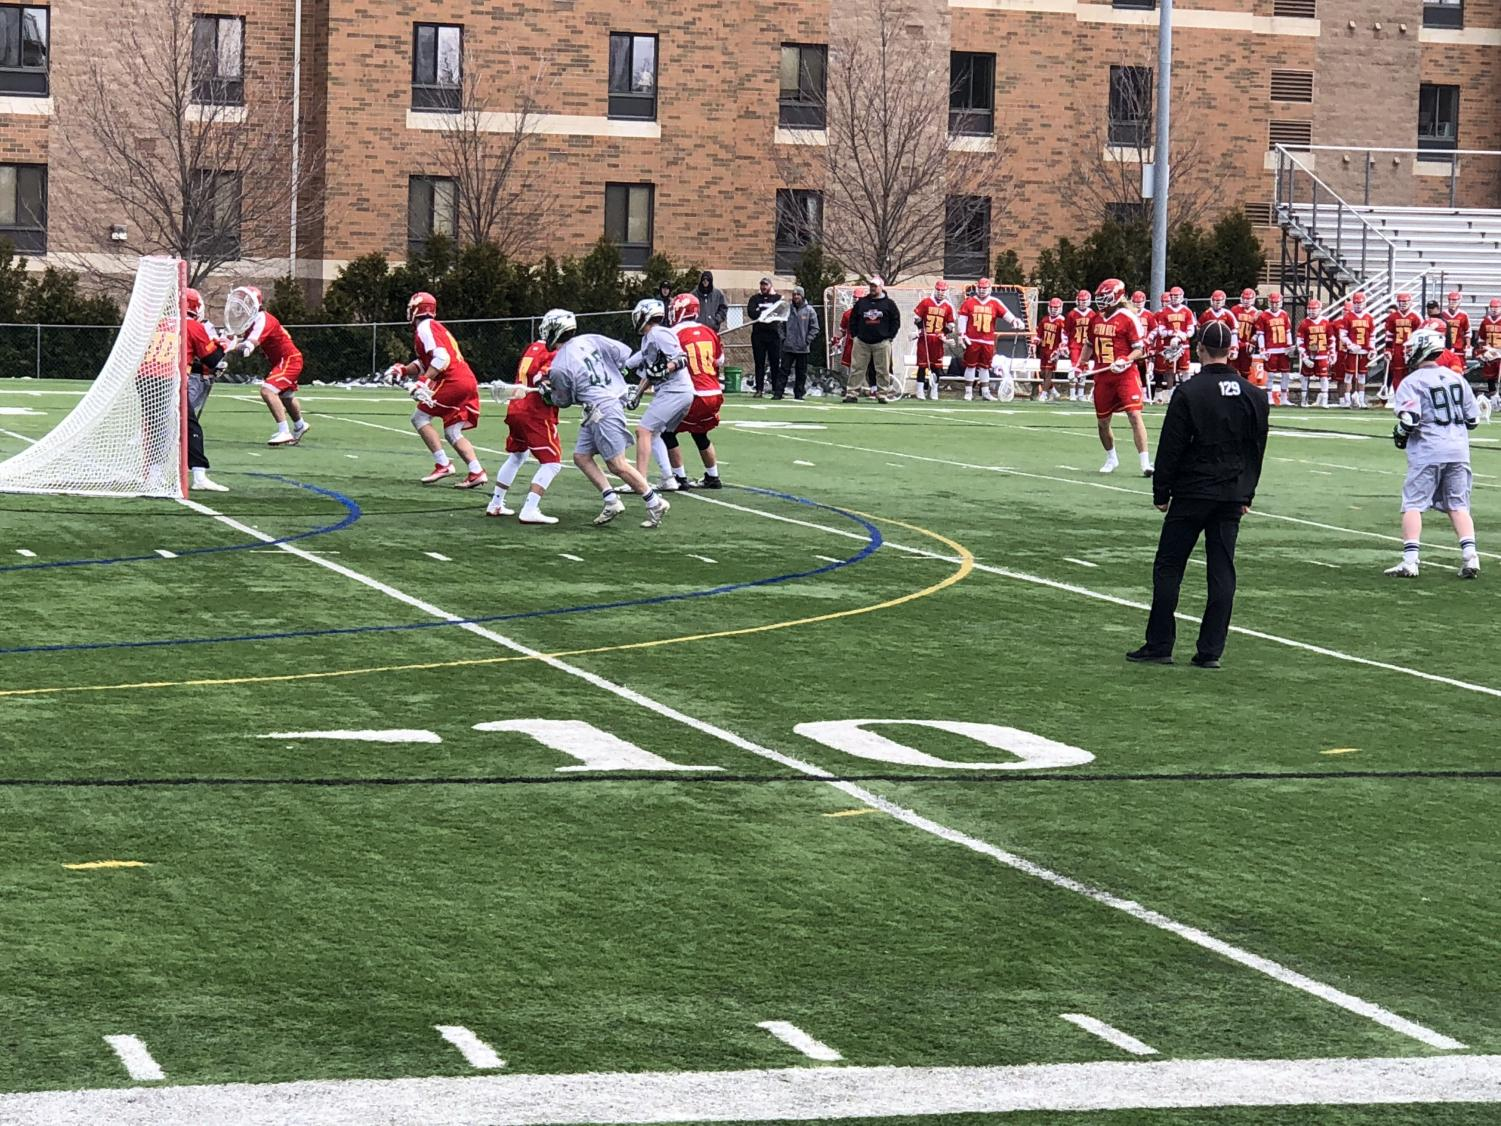 The Lakers' Nathan Grenon, at center, battles in front of the Seton Hill University goal.  Seton Hill would go on to win the matchup 11-9.